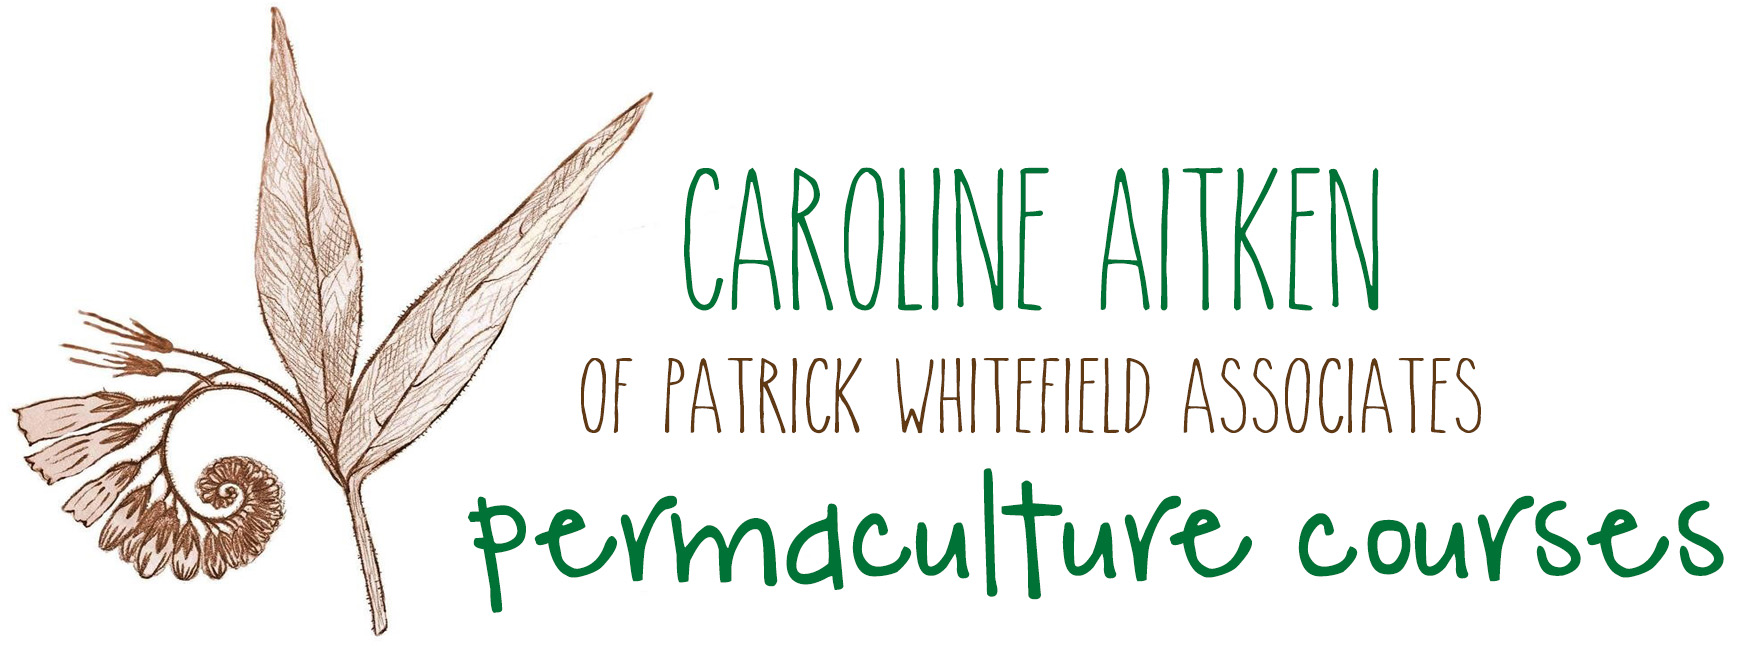 permaculture courses whitefield aitken